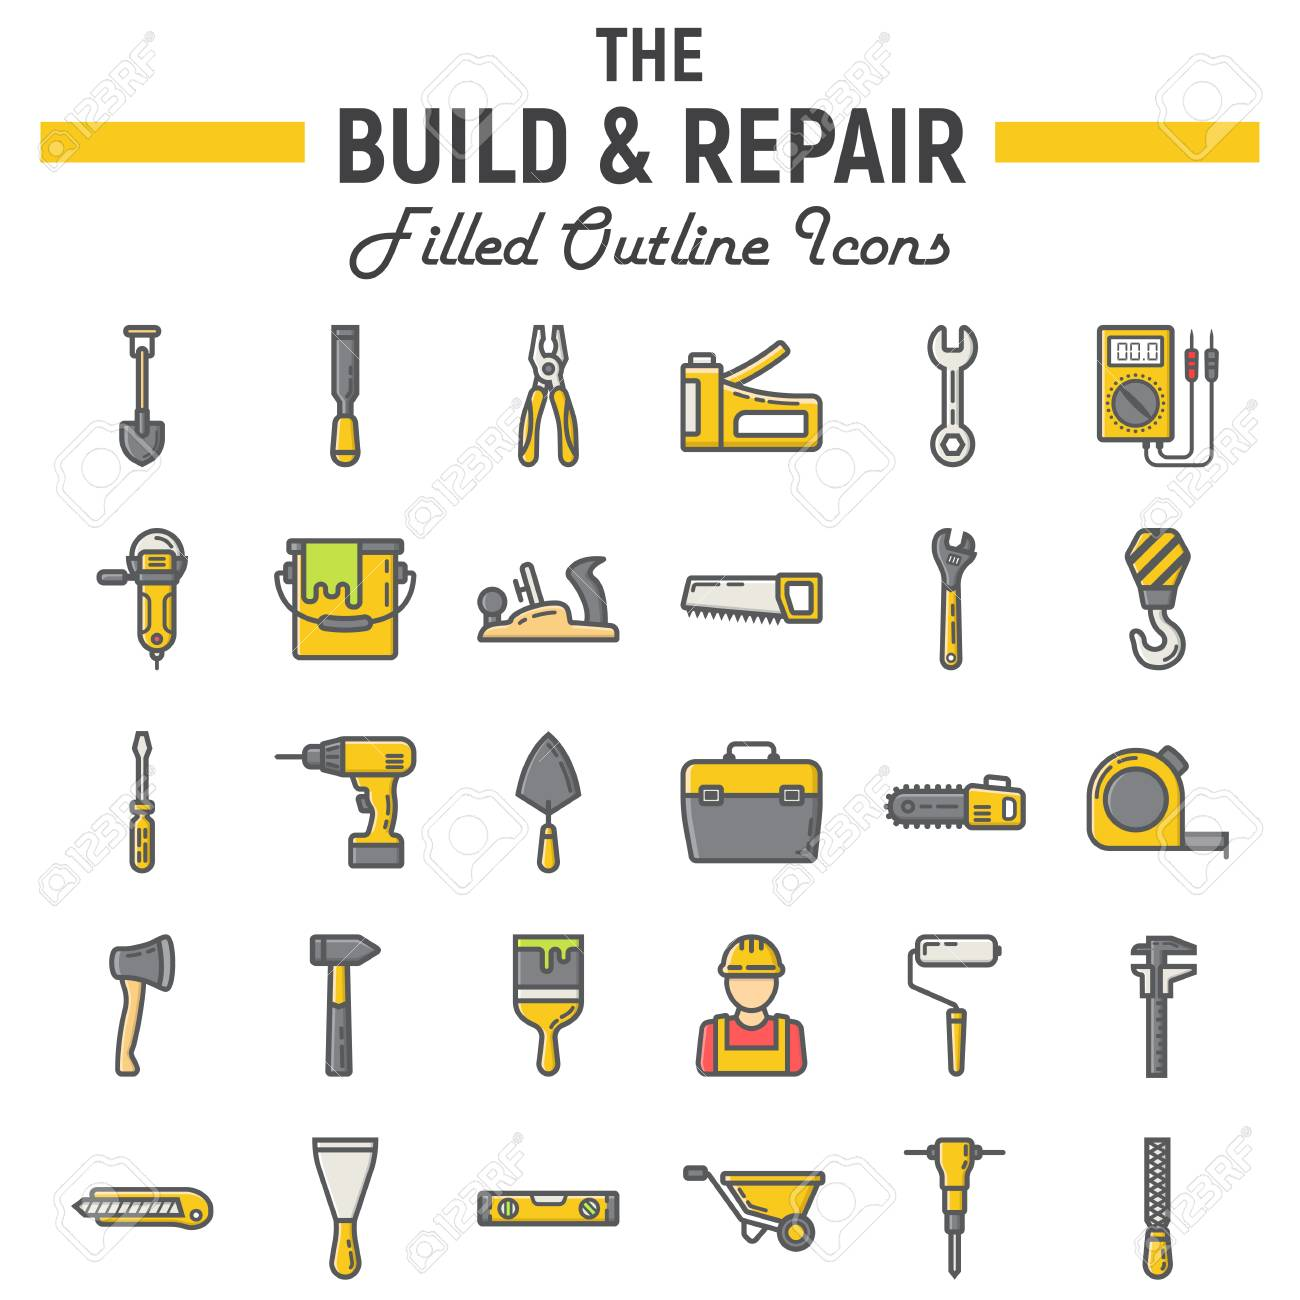 Build And Repair Filled Outline Icon Set Construction Symbols